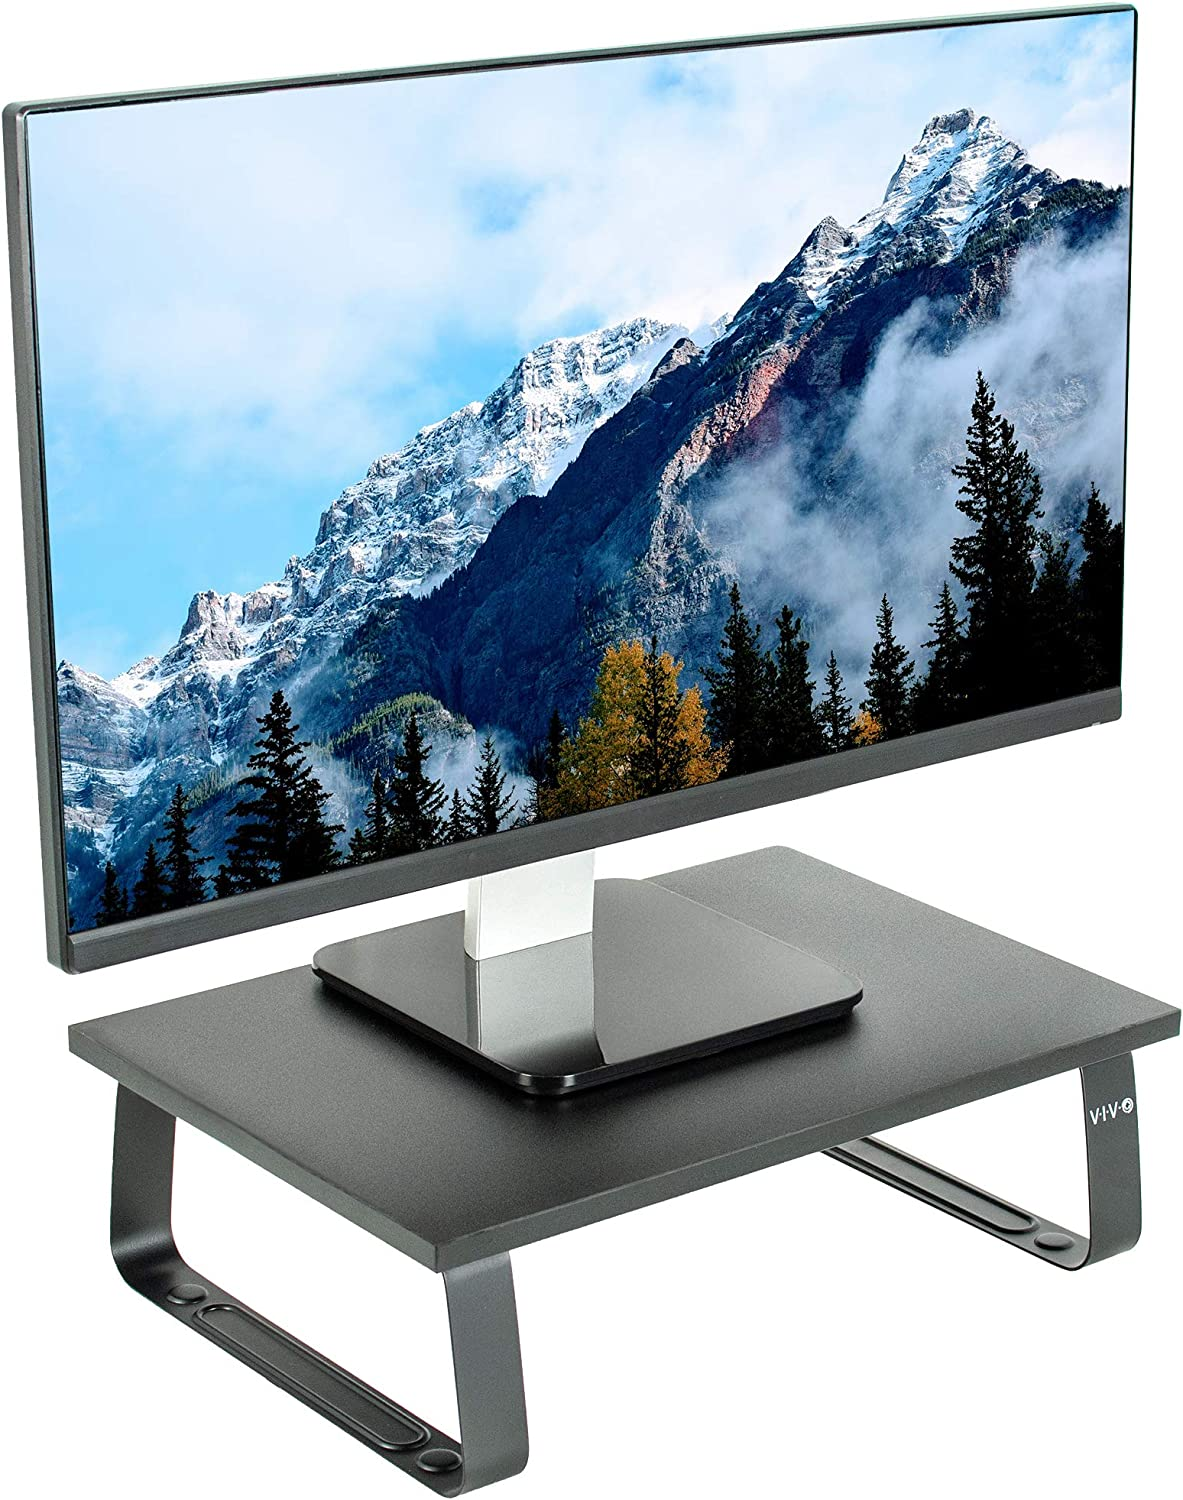 VIVO Black 15 inch Monitor Riser - Wood & Steel Desktop Stand | Ergonomic Desk and Tabletop Organizer (STAND-V000DS)